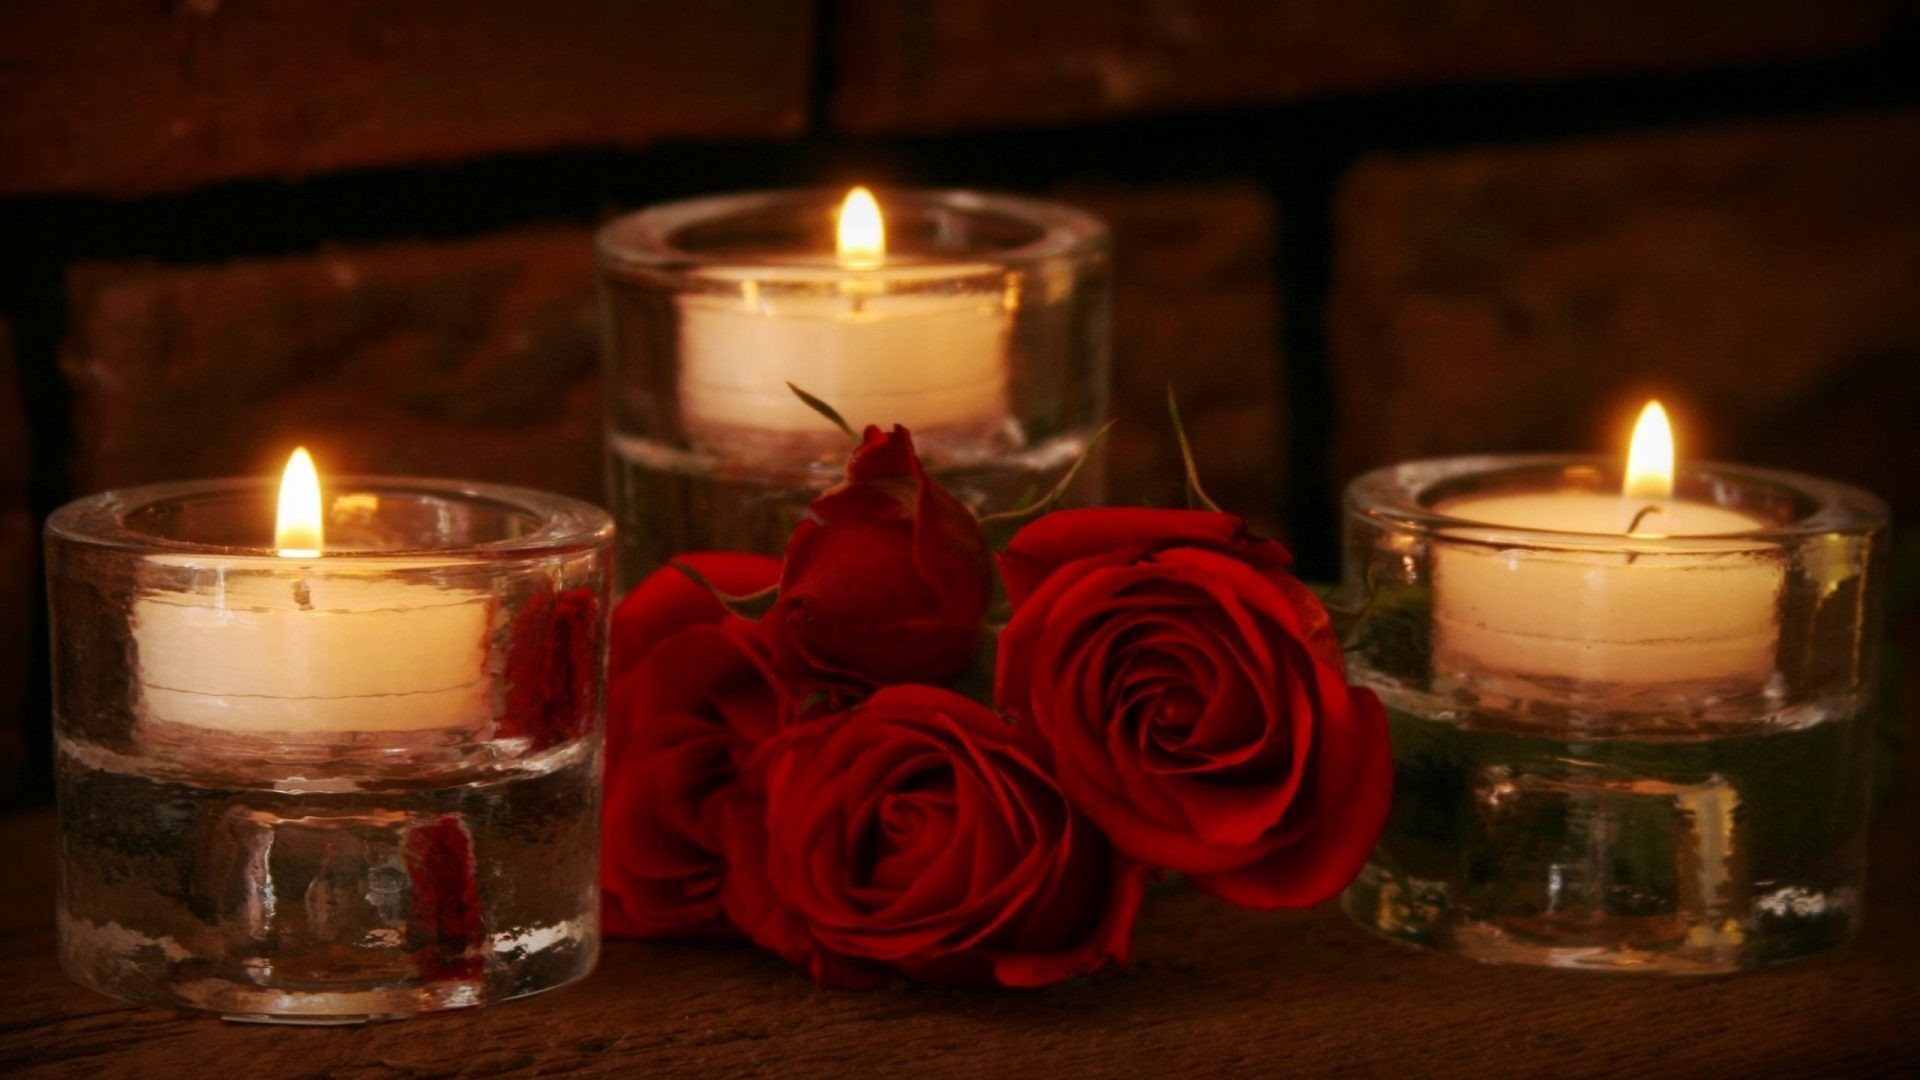 1920x1080 #220000 Color - Candle Beauty Life Valentines Red Pretty Nature Love Lovely  Lights Romance Light